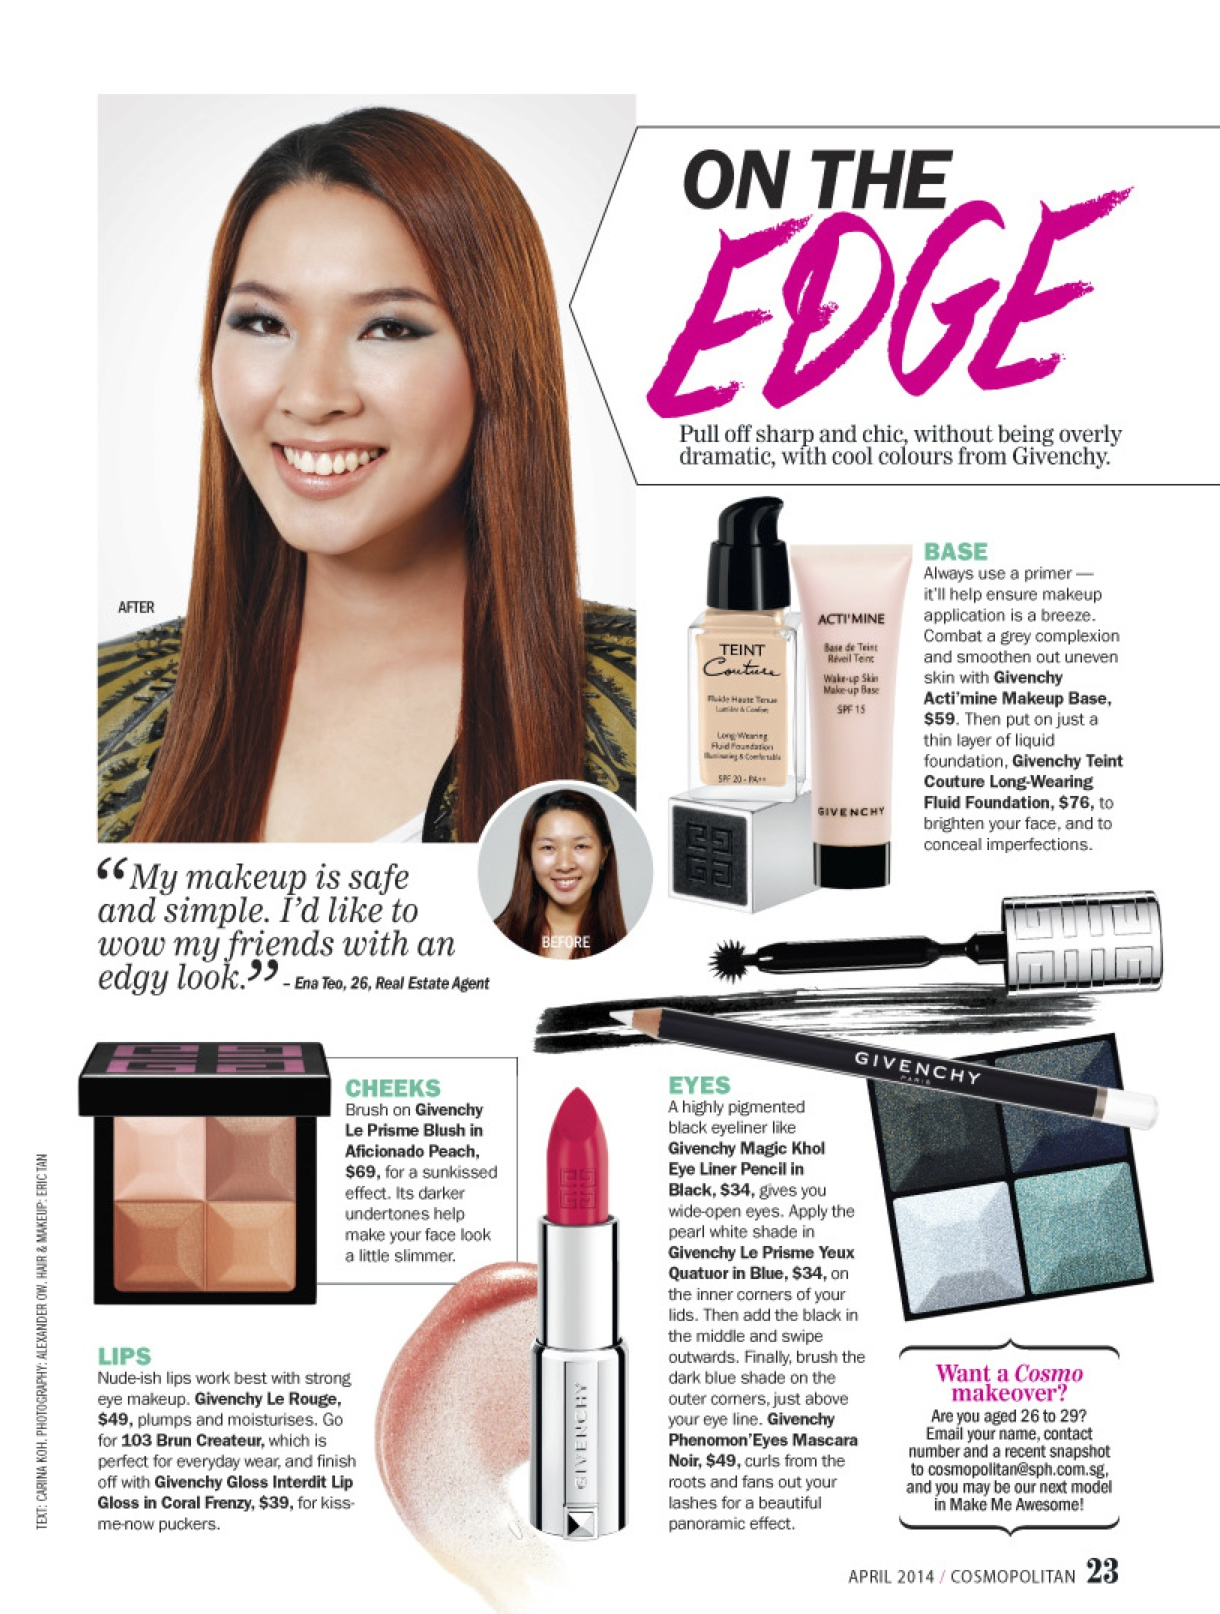 Ena Featured on Cosmopolitan April 2014